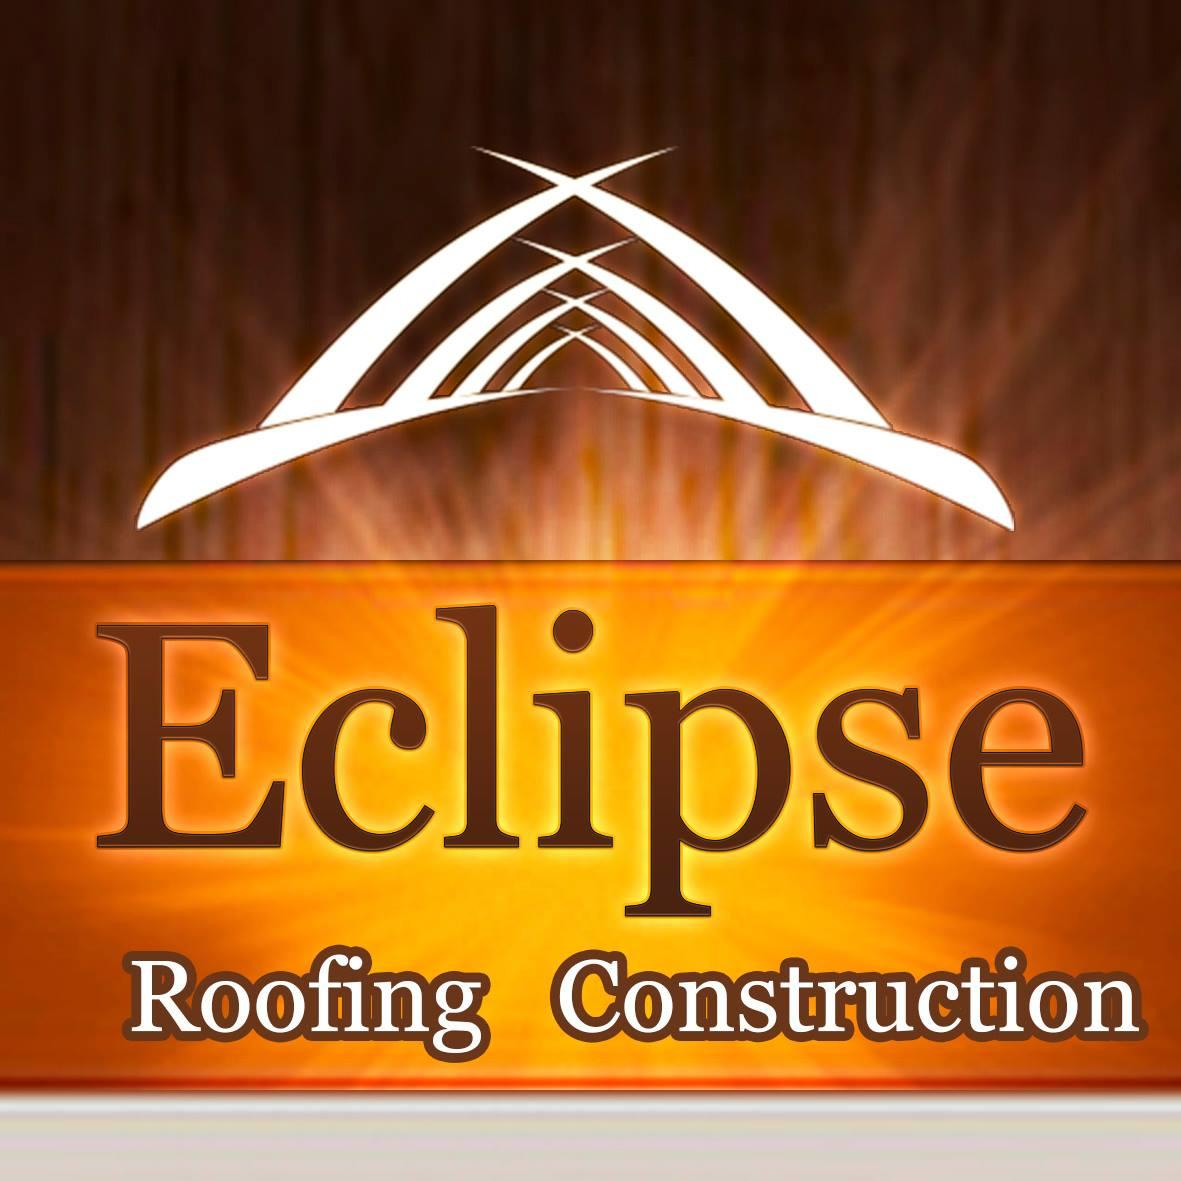 Eclipse Roofing and Construction LLC